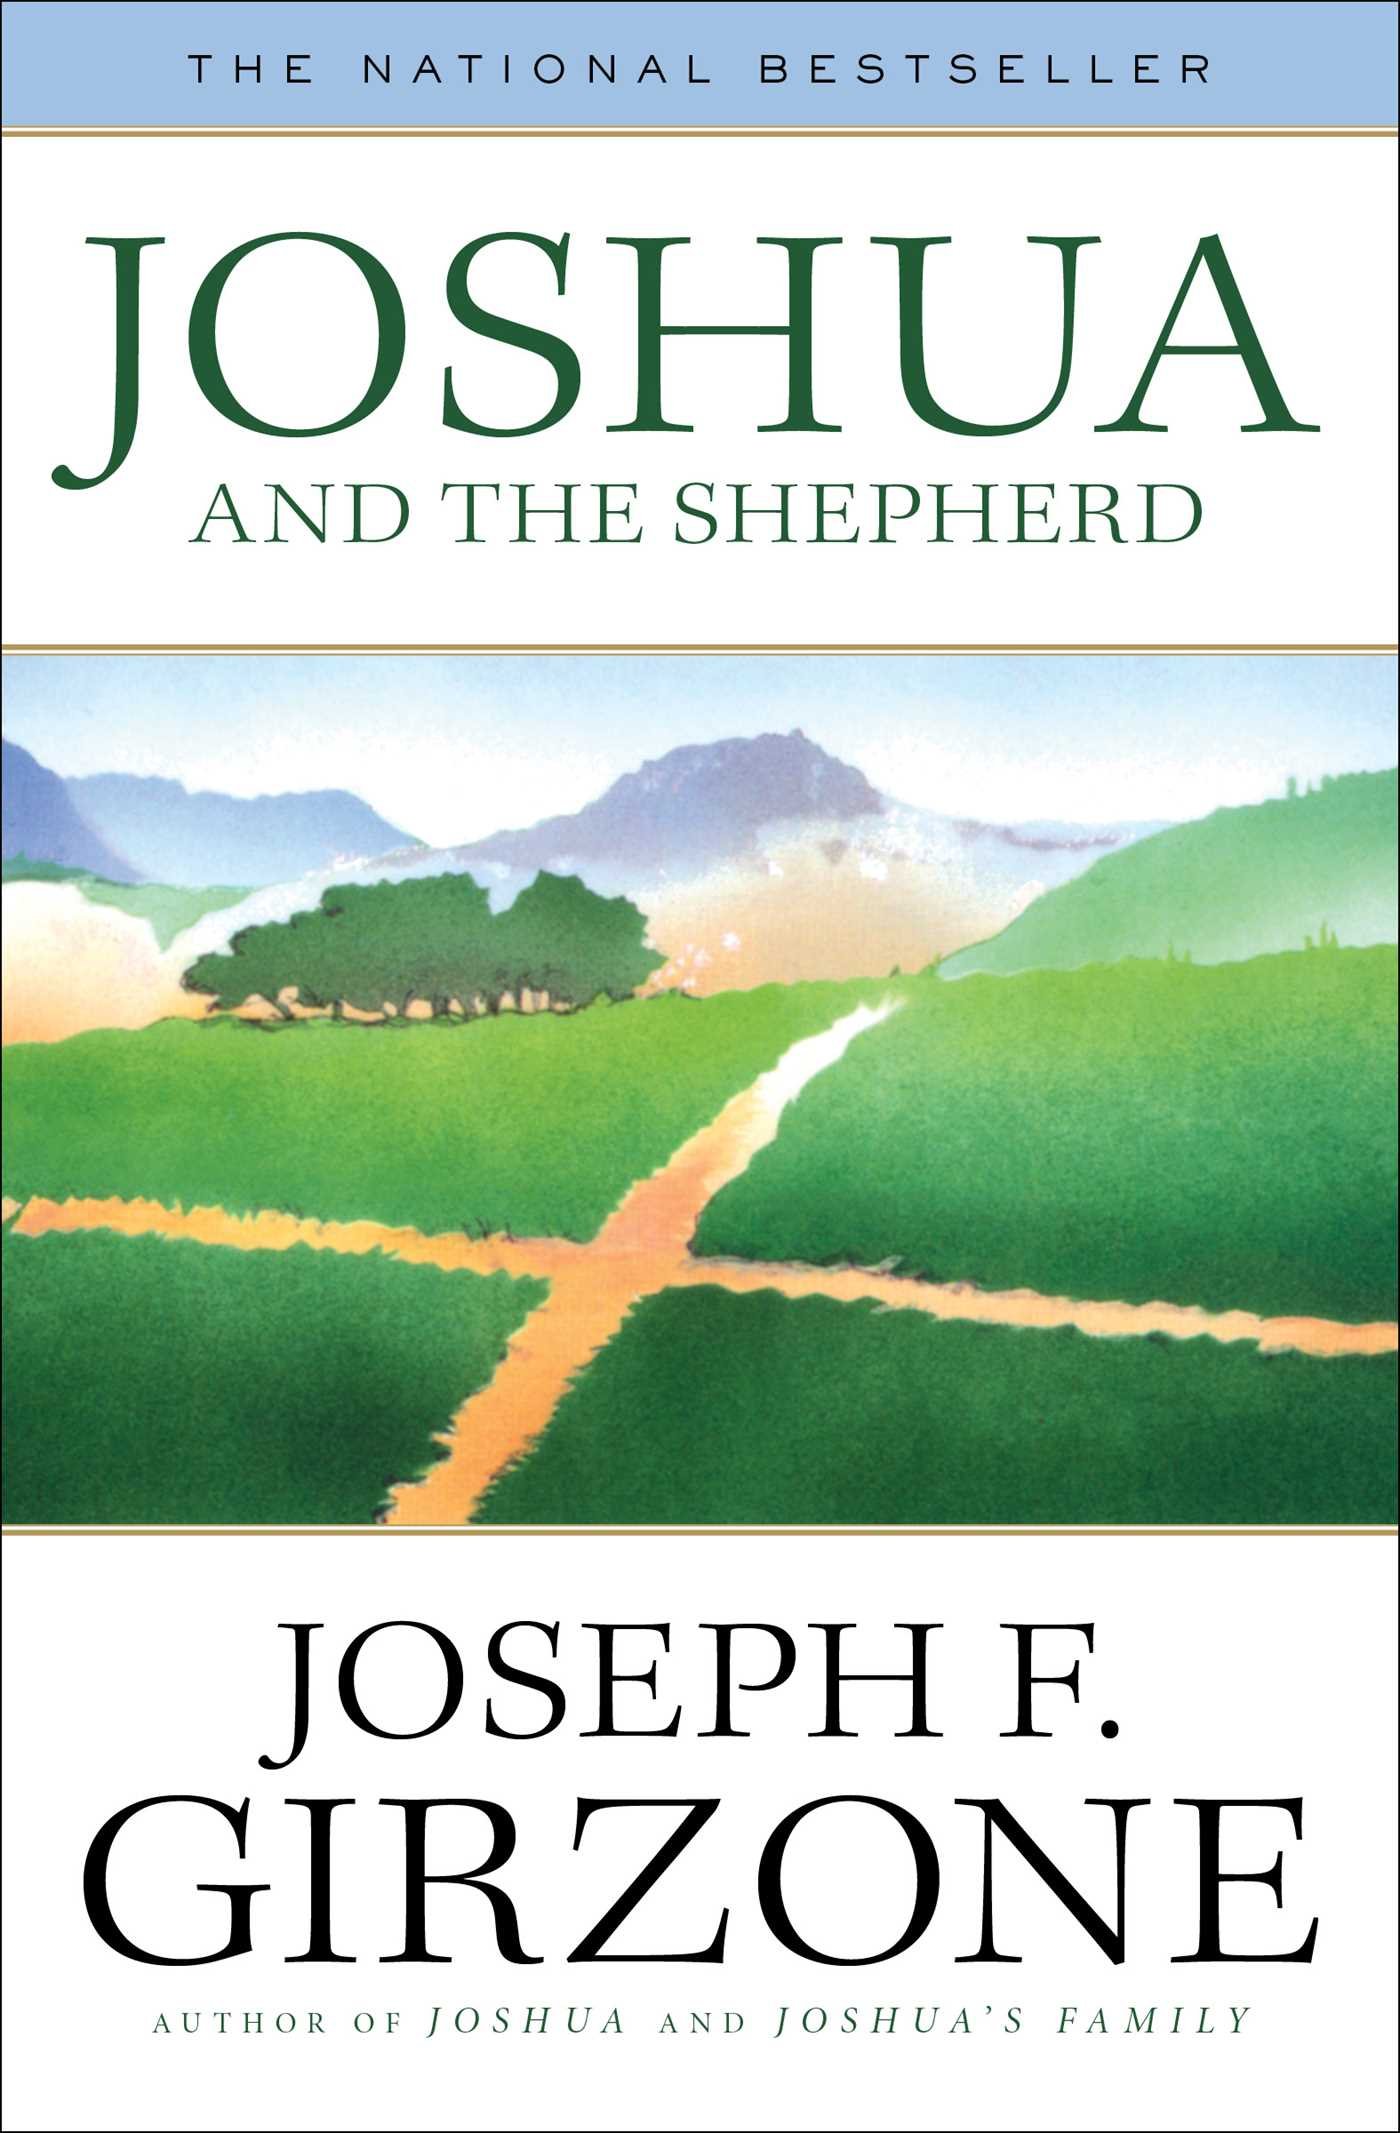 Joshua-and-the-shepherd-9780684825045_hr